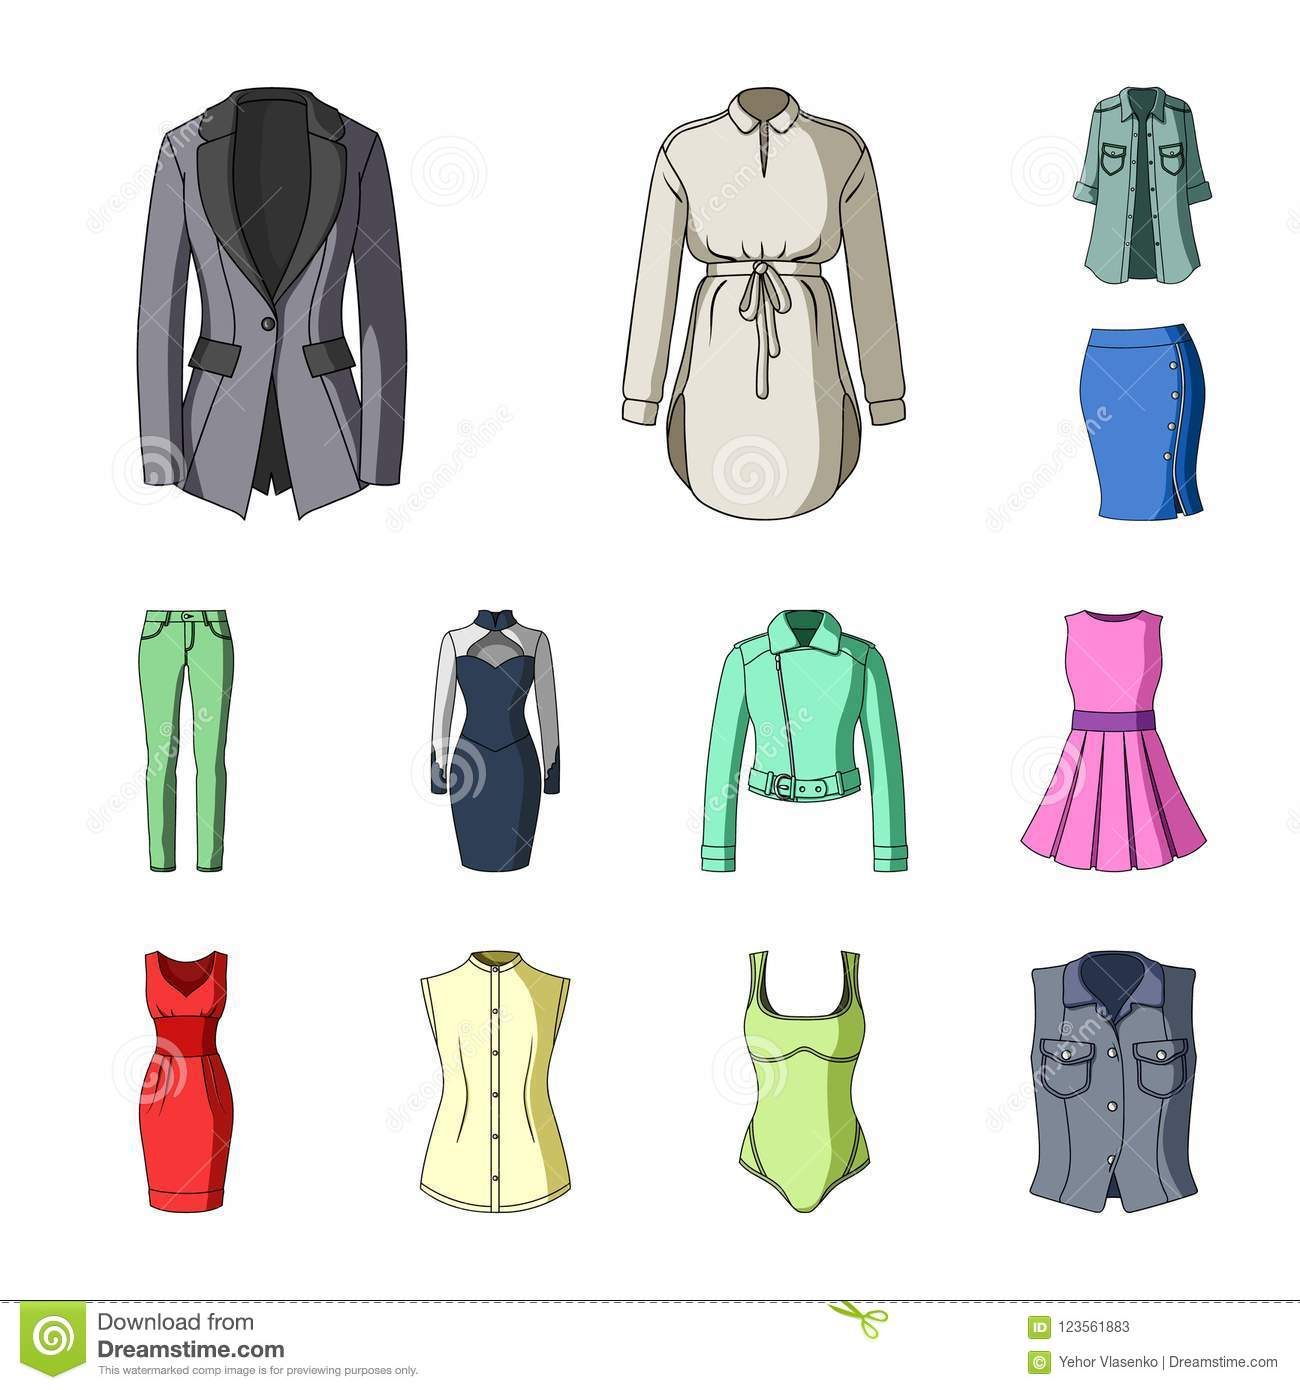 b10e6122e16 Women Clothing cartoon icons in set collection for design.Clothing  Varieties and Accessories vector symbol stock illustration.